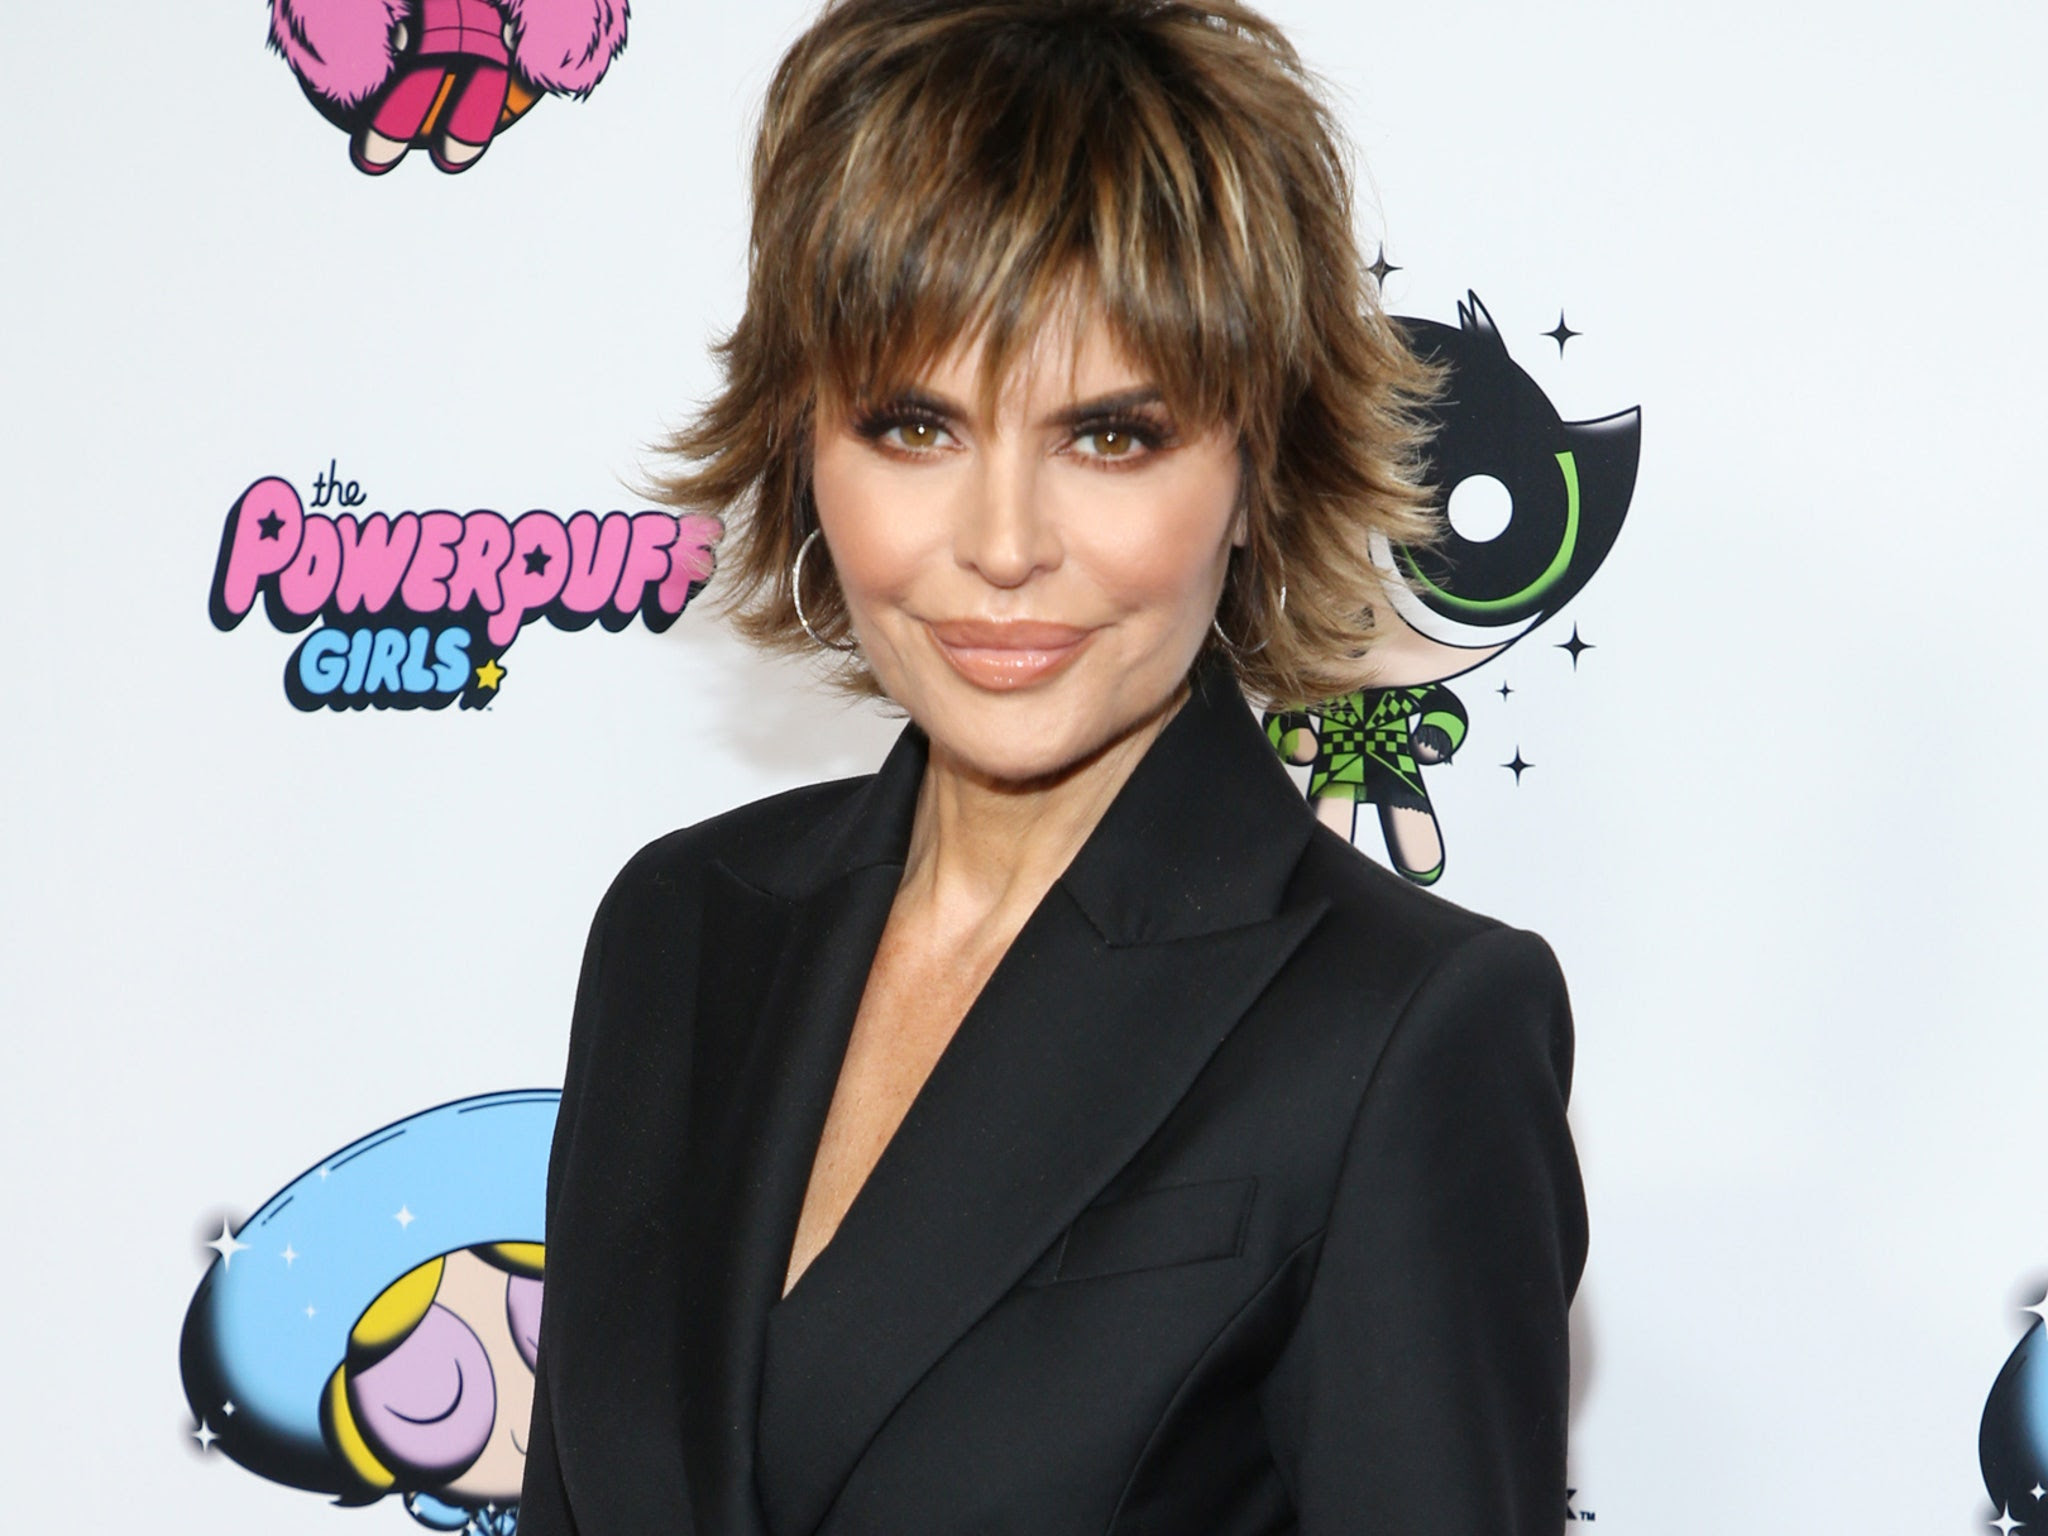 Lisa Rinna Reveals She Had One-Night Stands with Patrick Muldoon